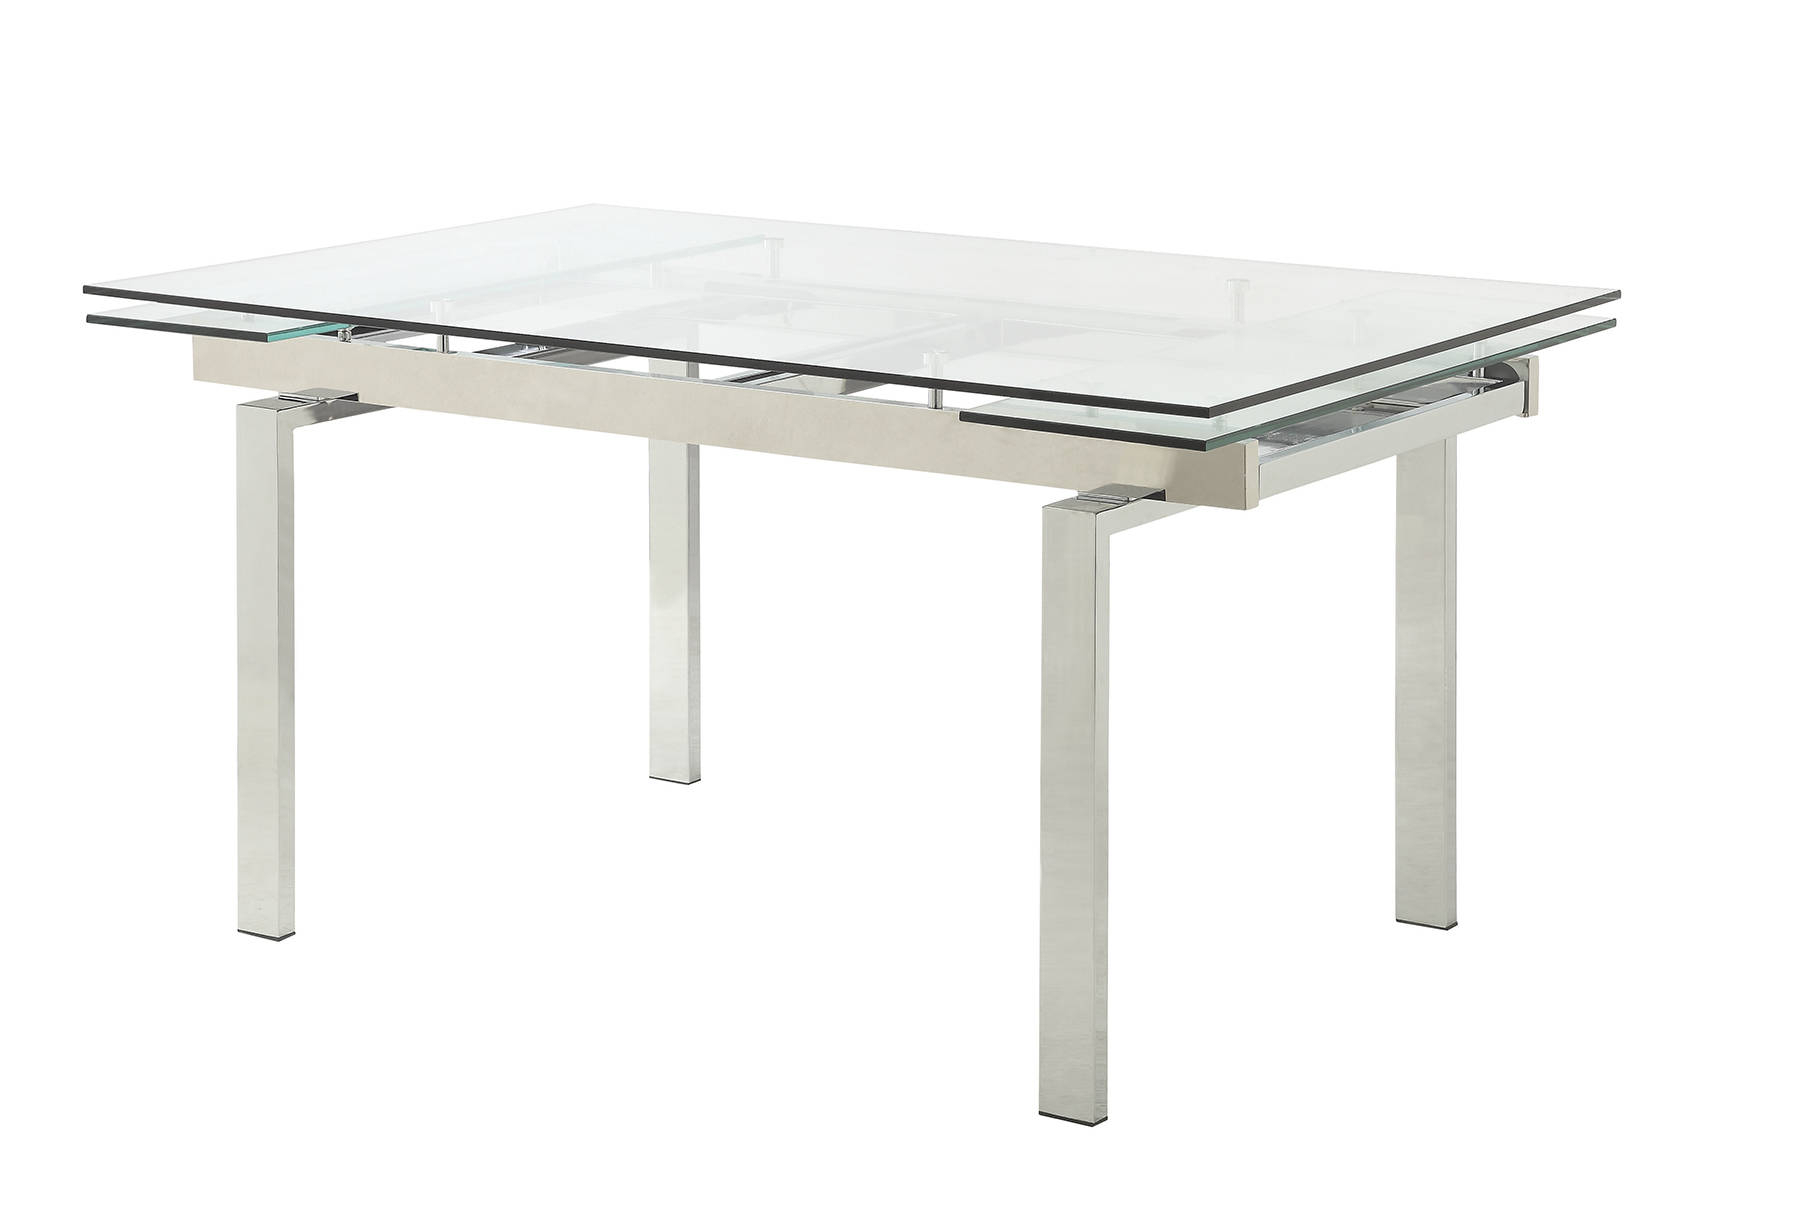 Most Recent Chrome Dining Tables With Tempered Glass Regarding Wexford Contemporary Chrome Tempered Glass Leaf Extension (View 27 of 30)